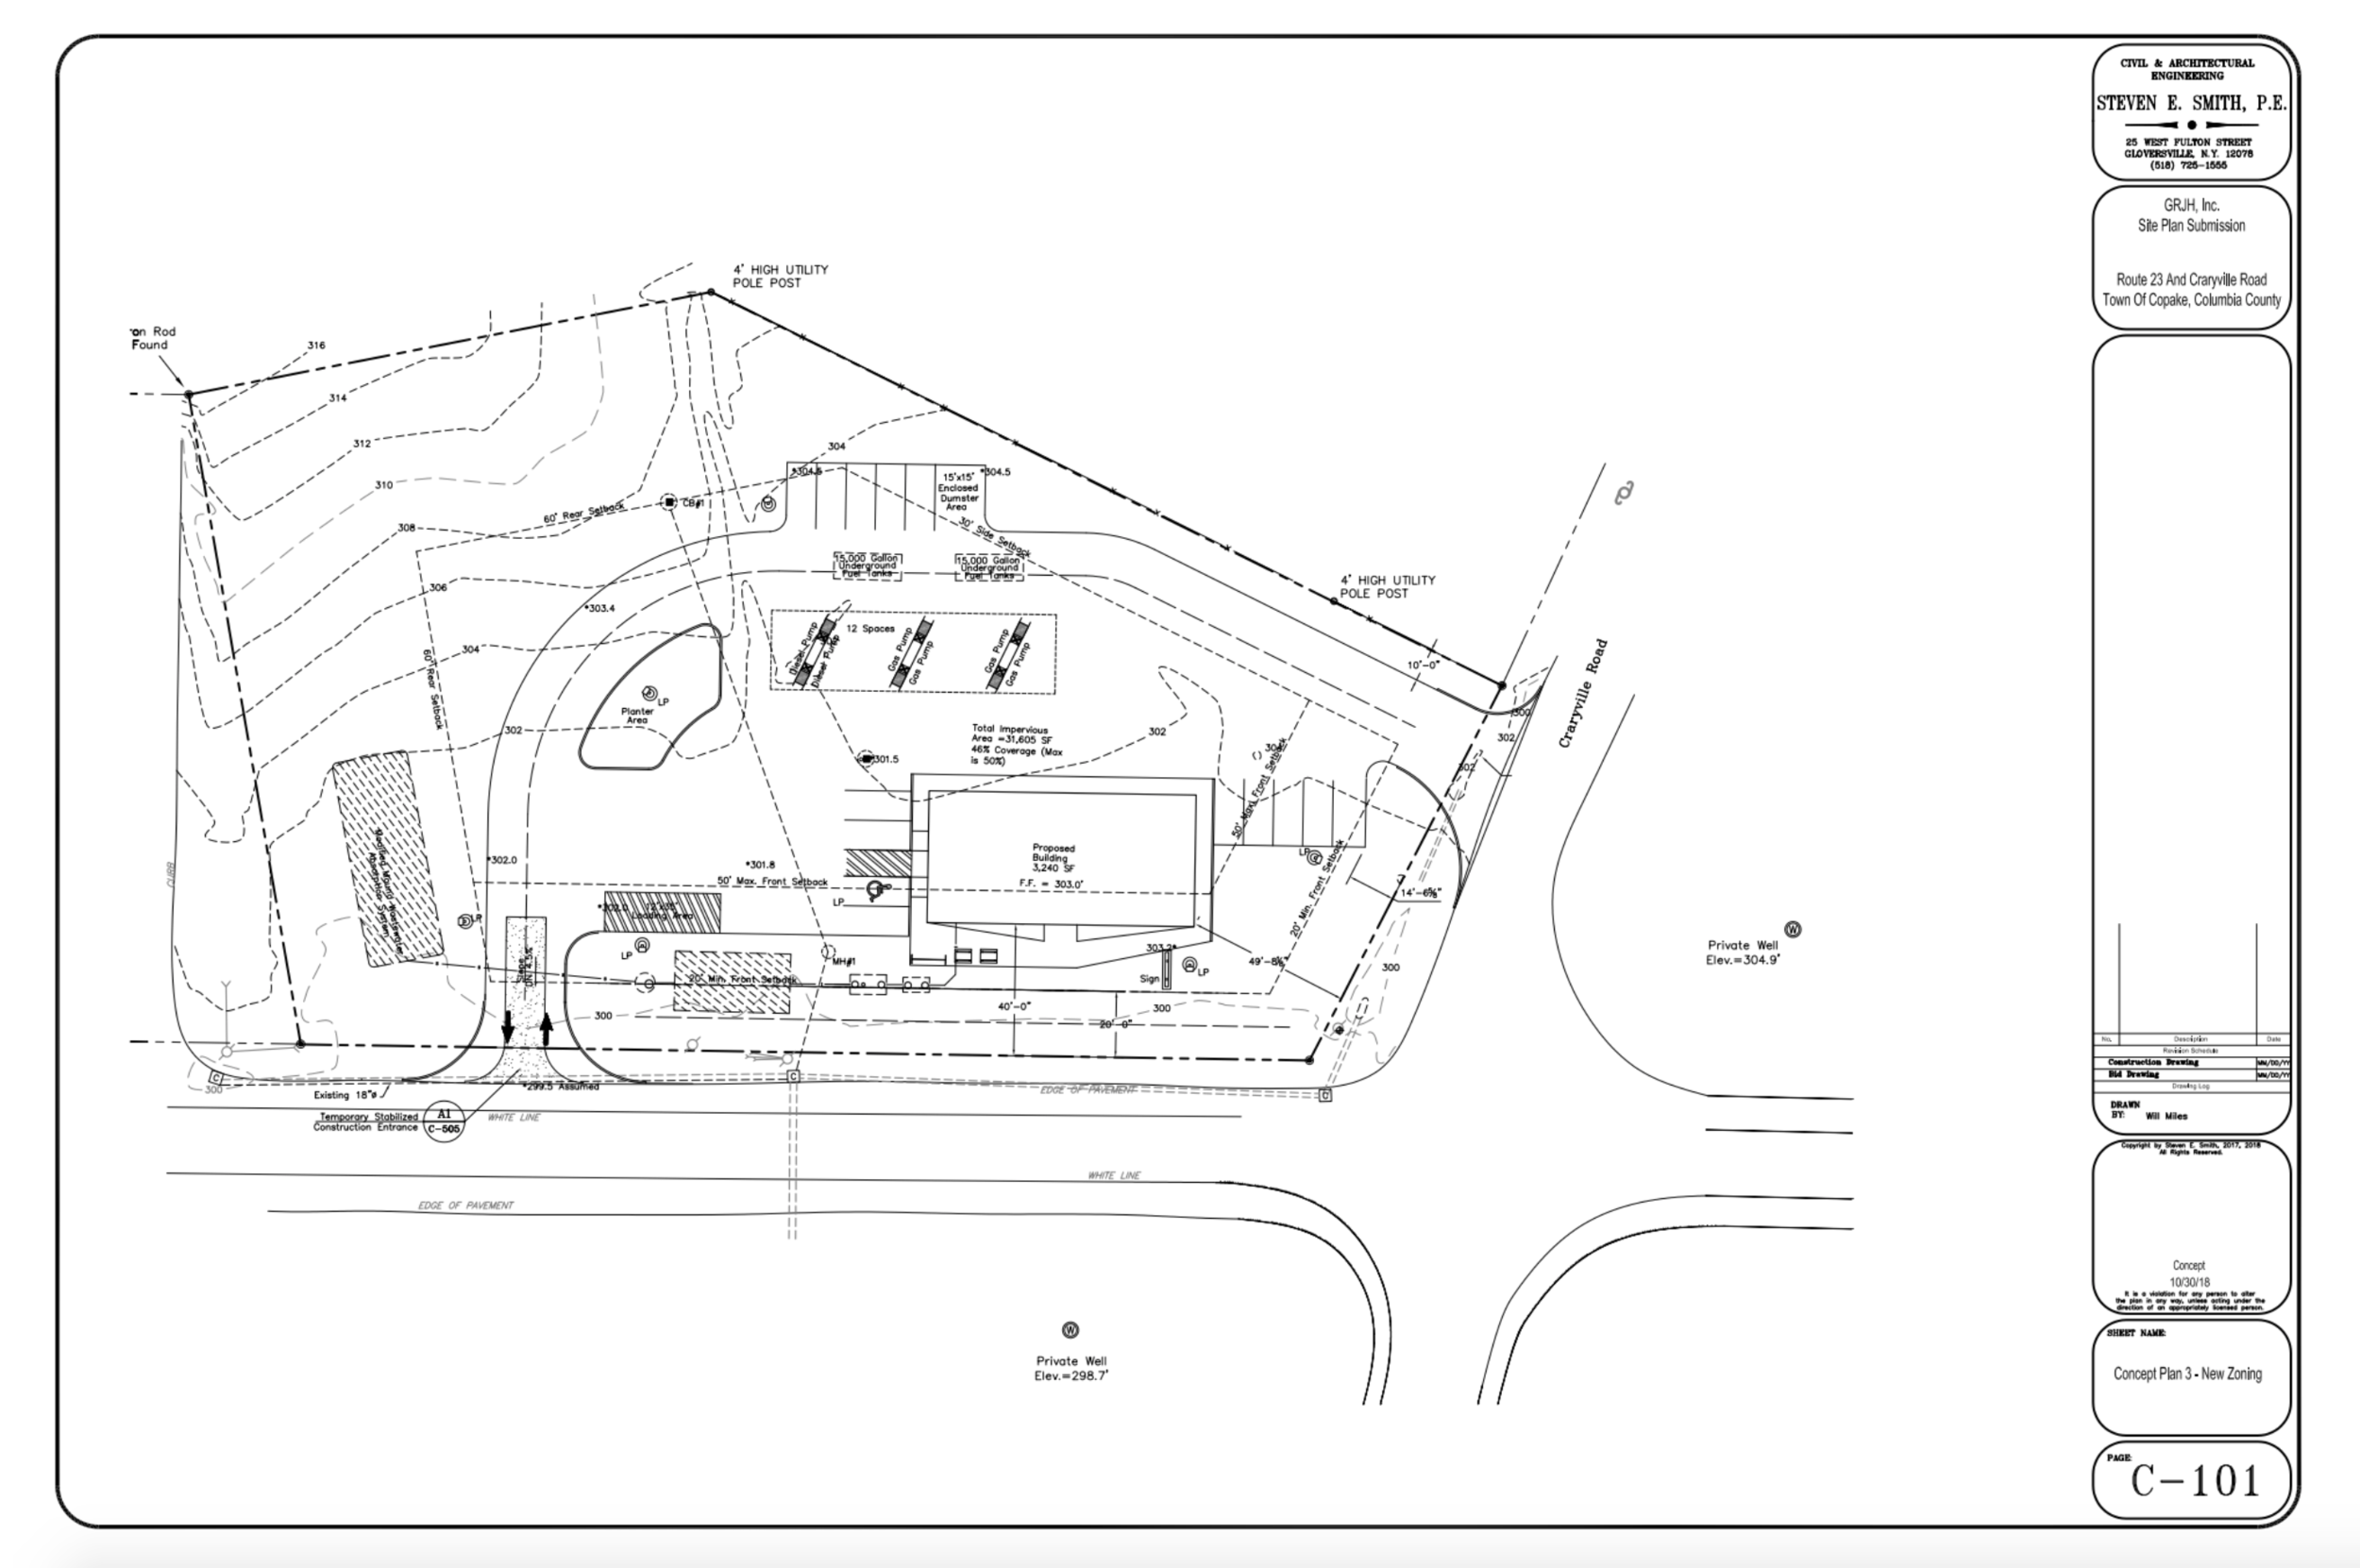 Revised Concept Site Plan submitted October 10, 2018: Revision to July 24 Submission